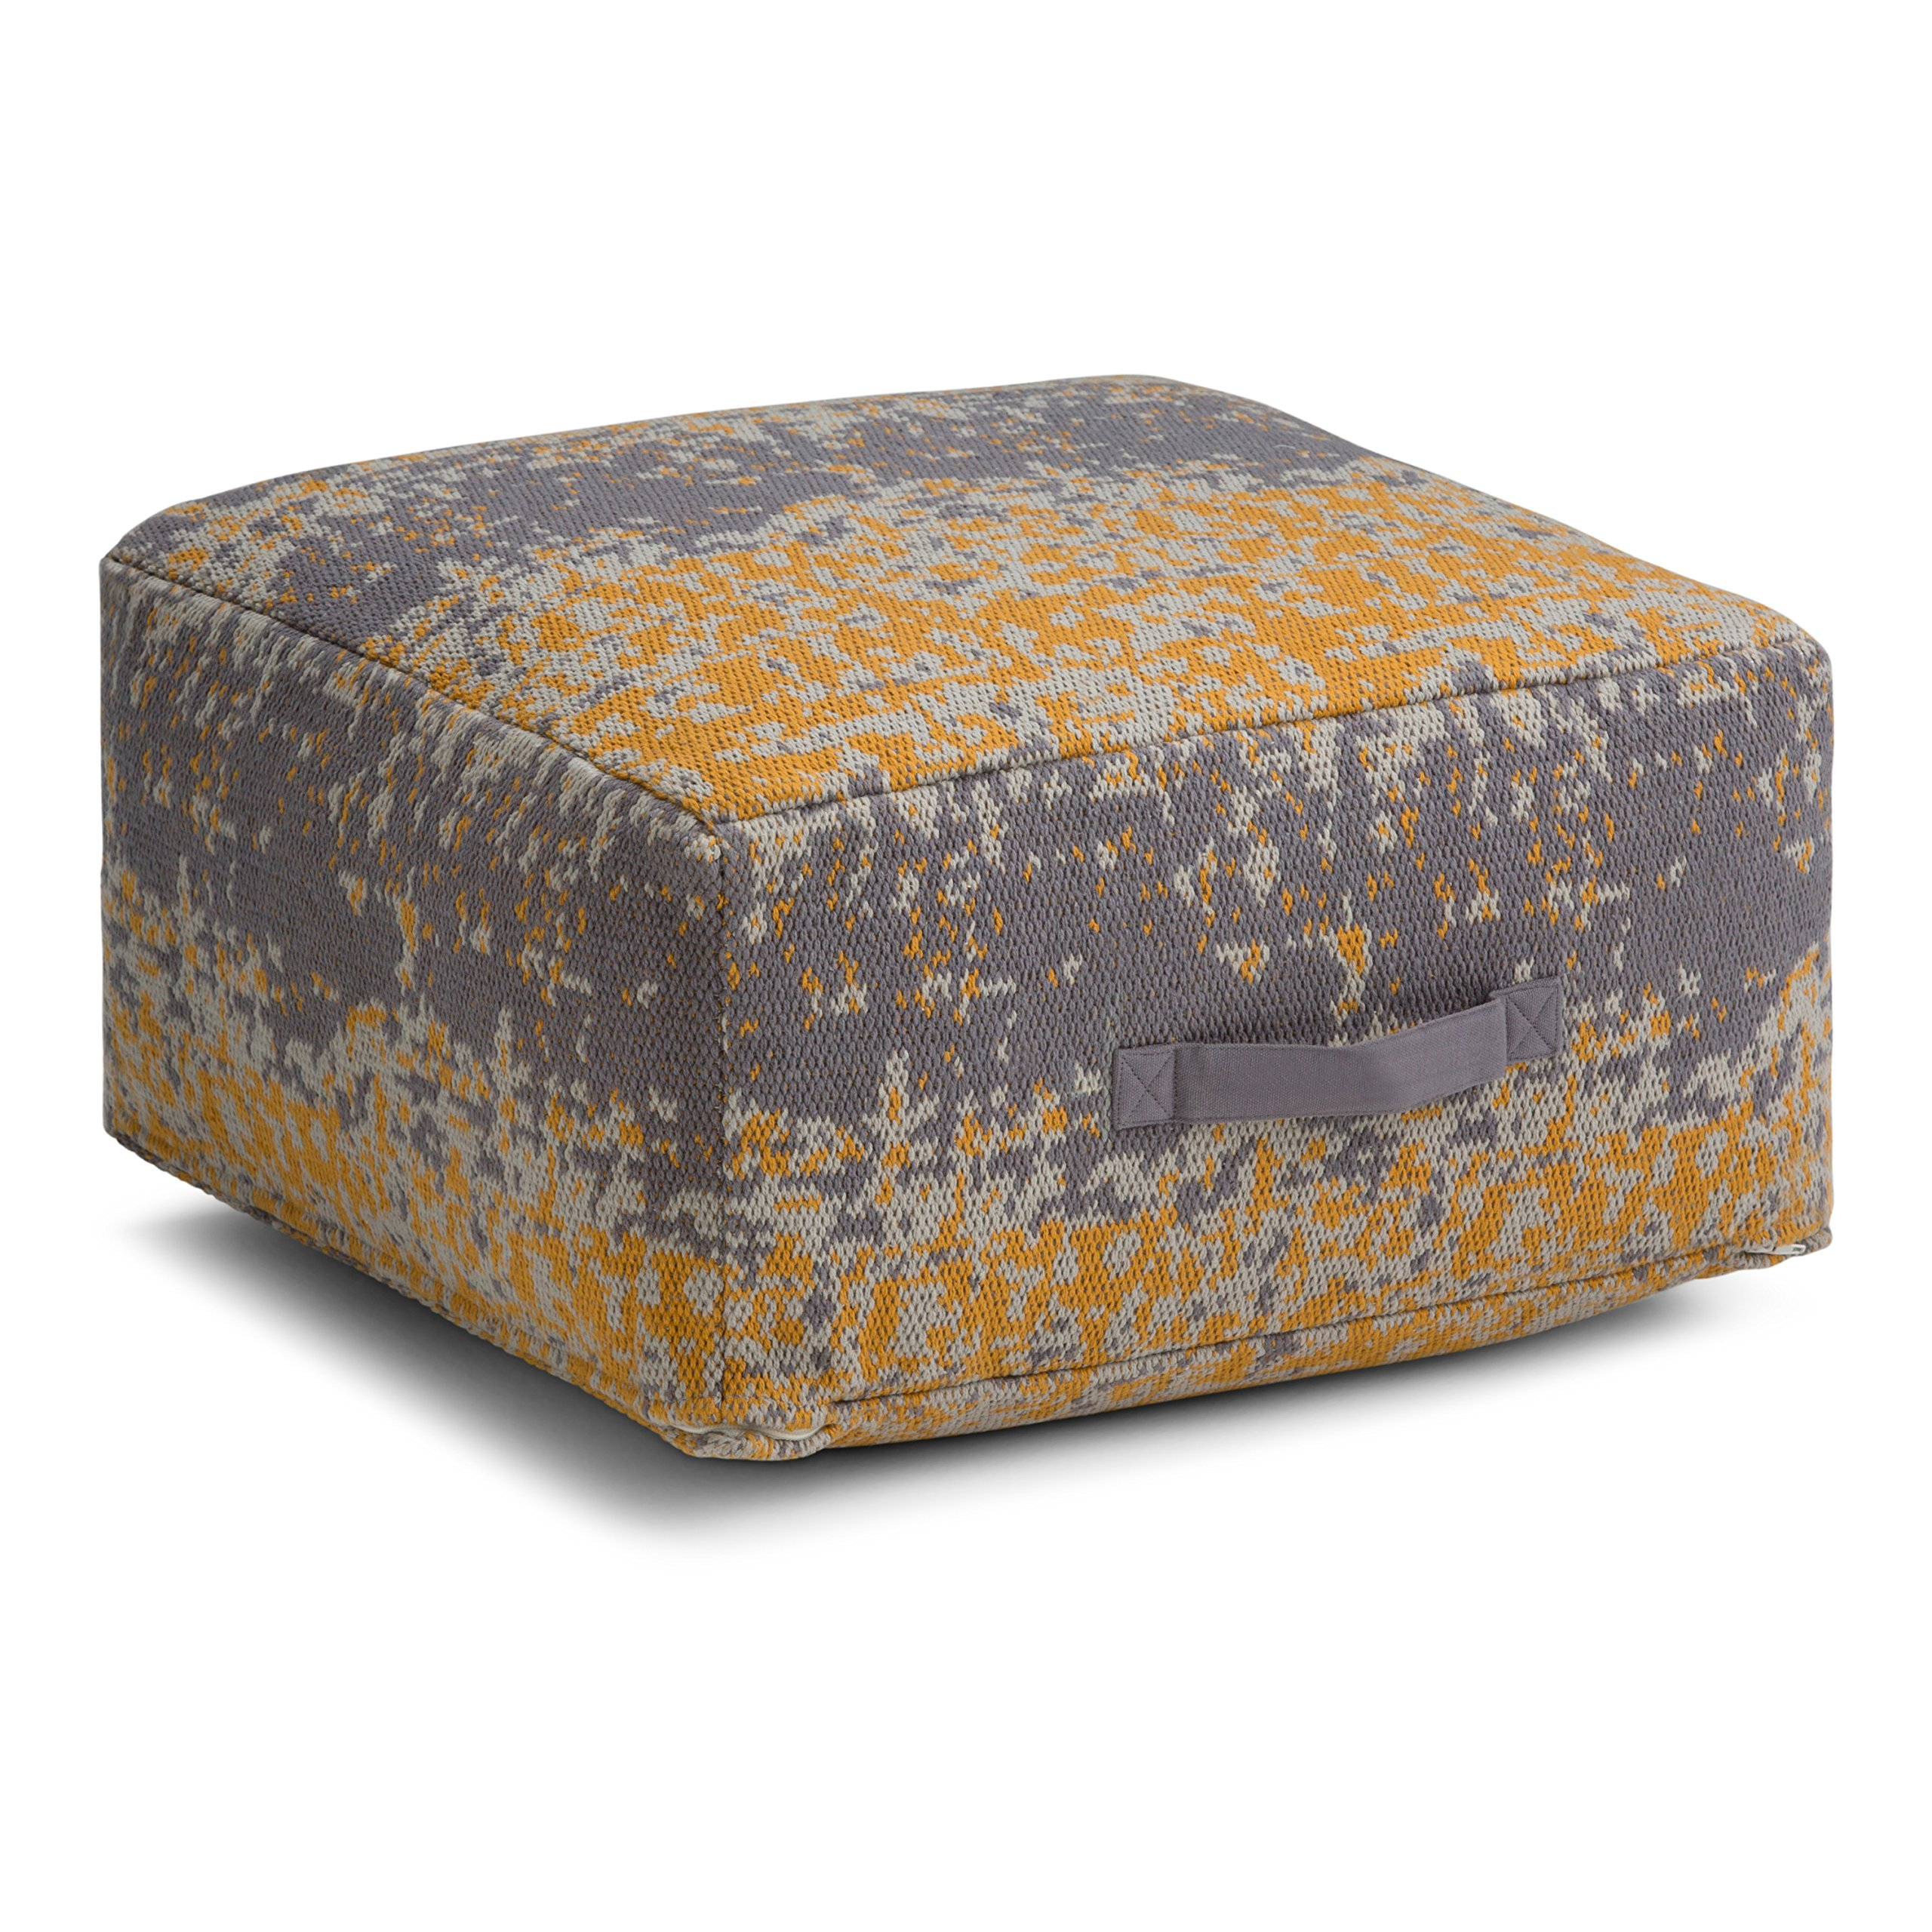 Simpli Home Tilley Square Pouf, Yellow and Grey